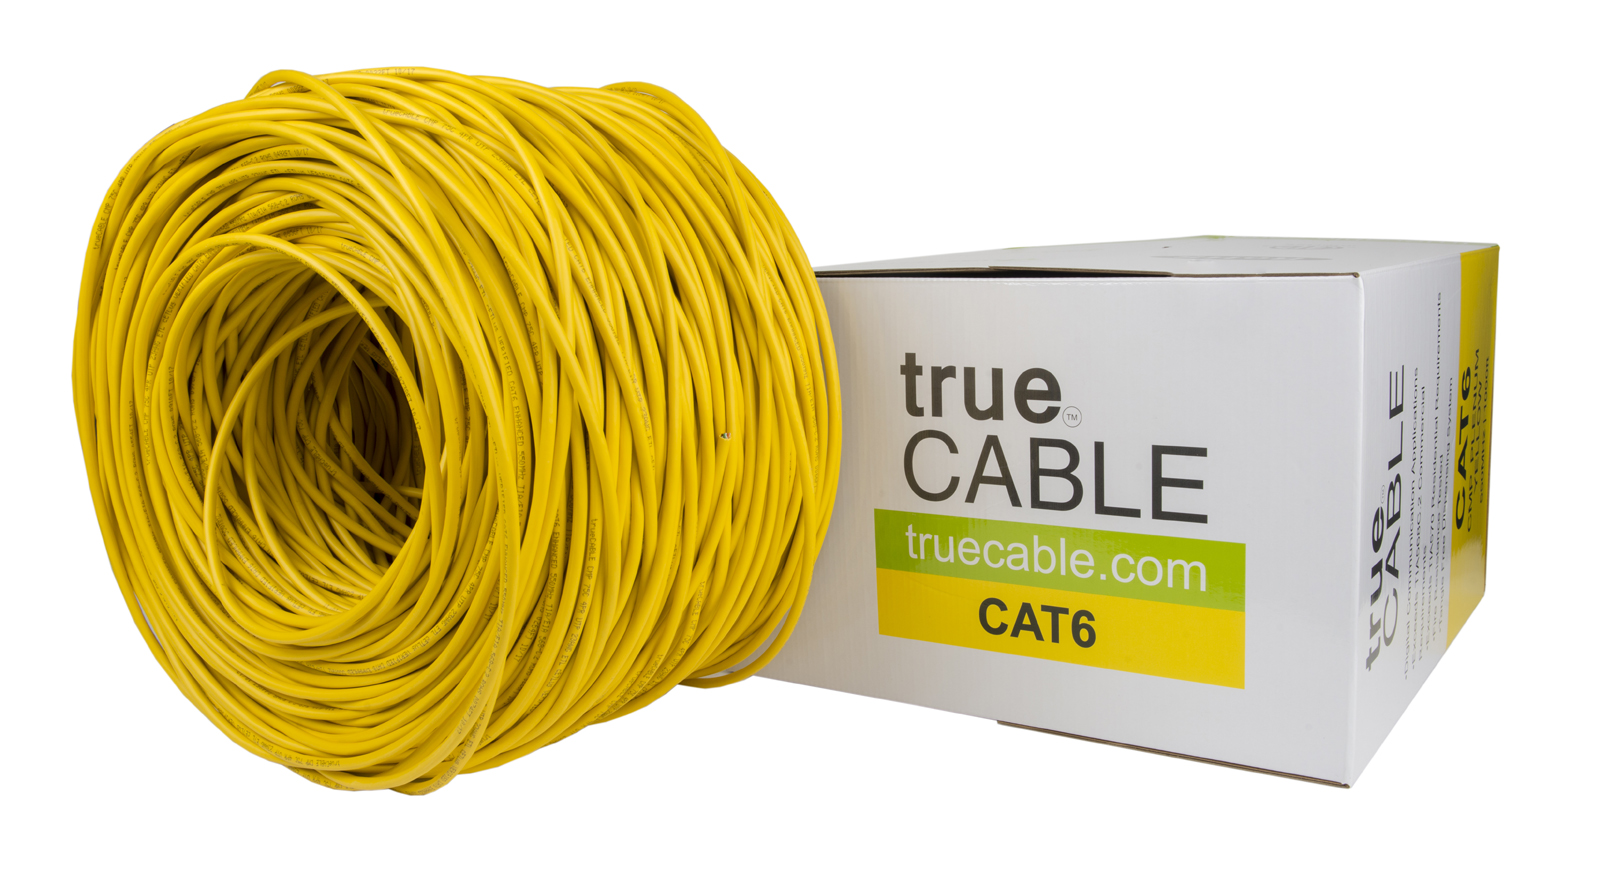 True Cable yellow CAT6 cable and box photographed by Robintek Photography